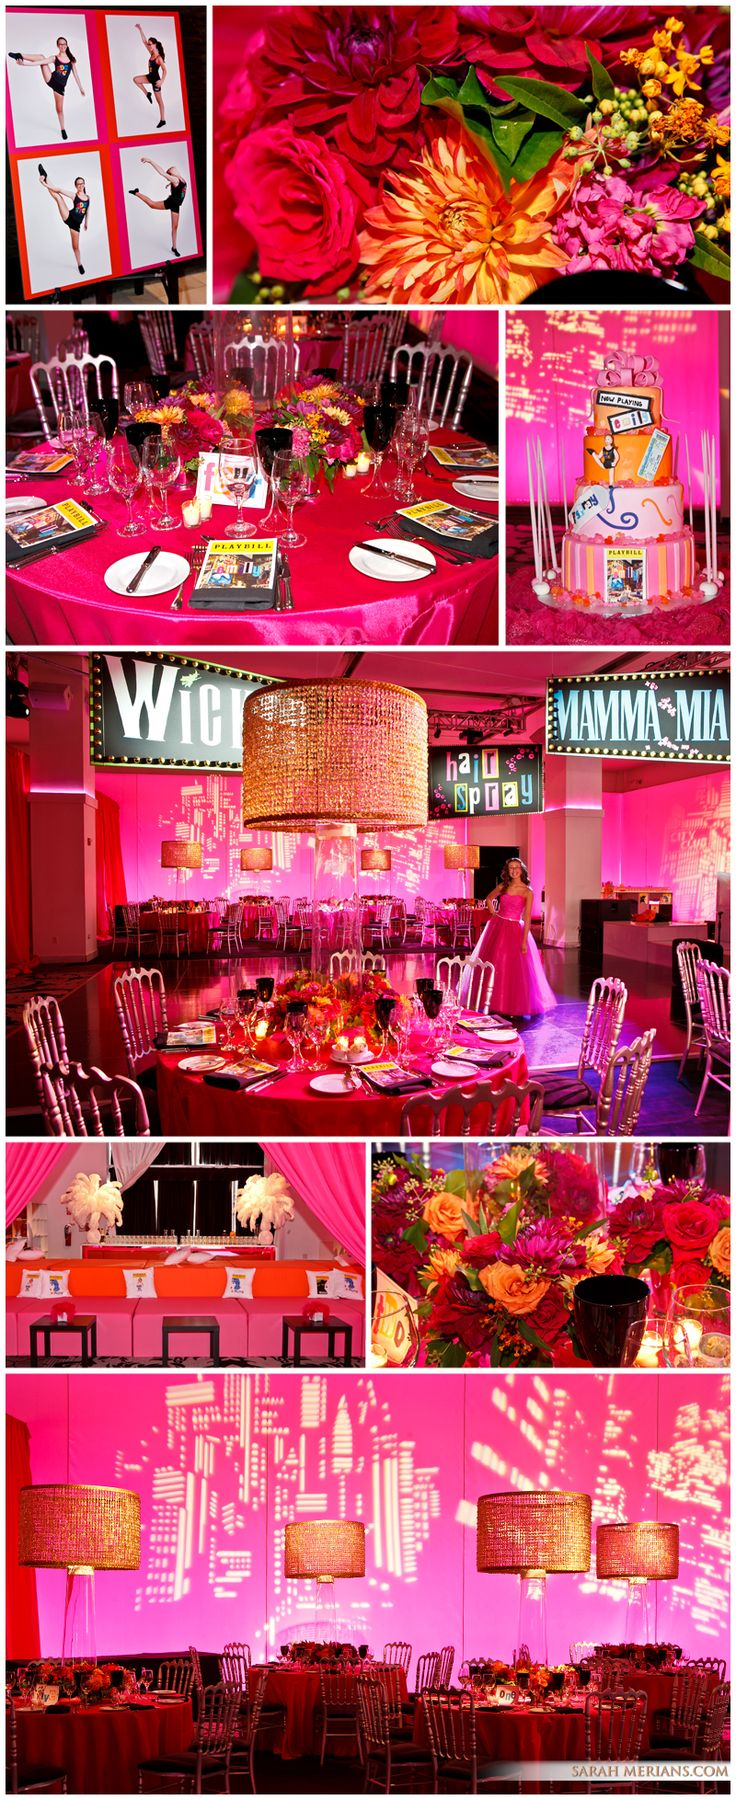 Tags bar and bat mitzvah event decor themes venues - Emily S Bat Mitzvah At New York S Espace